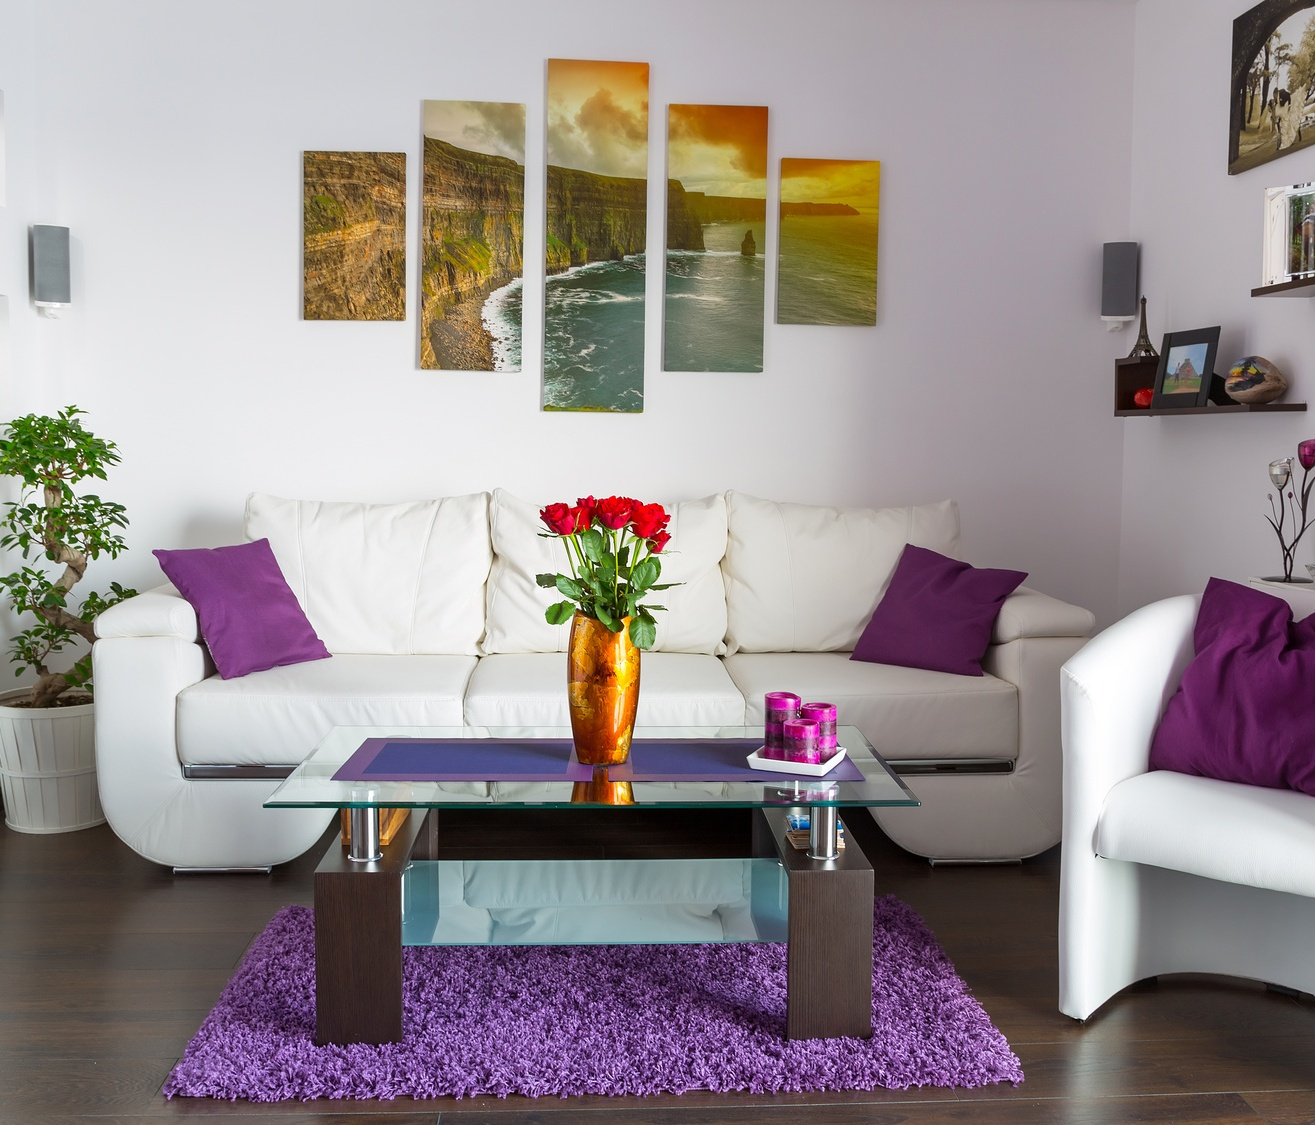 Modern-living-room-interior-with-canvas-print-art-on-the-wall